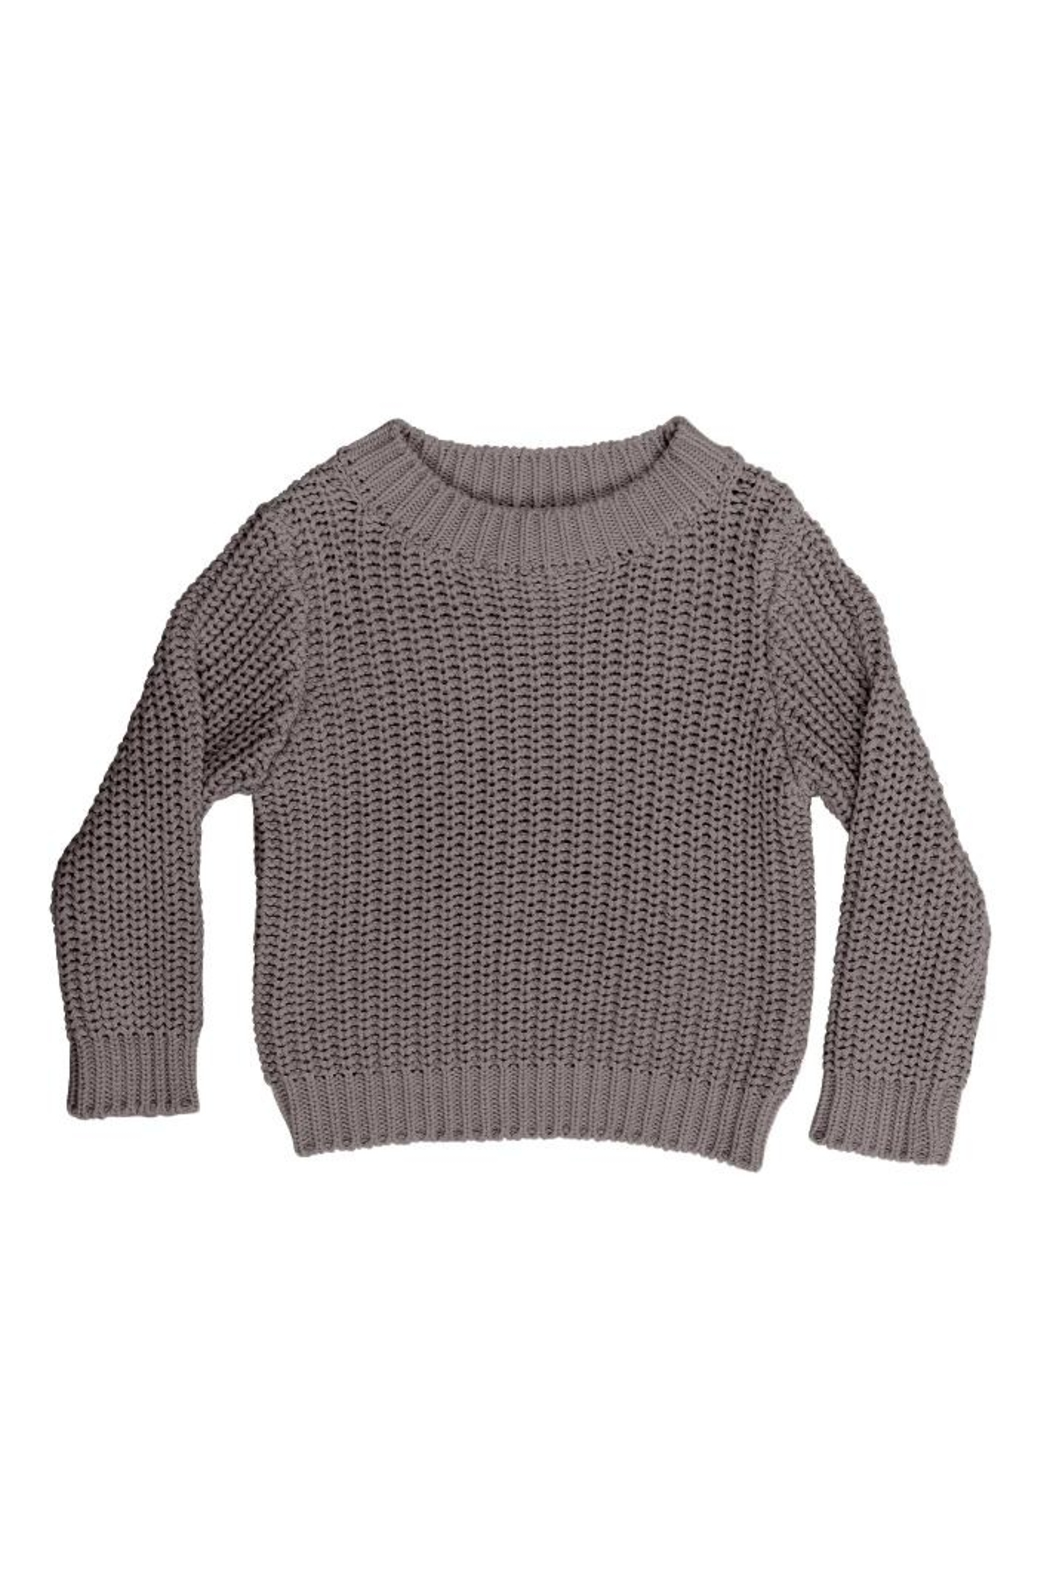 Huxbaby Chunky Knit Sweater - Front Cropped Image